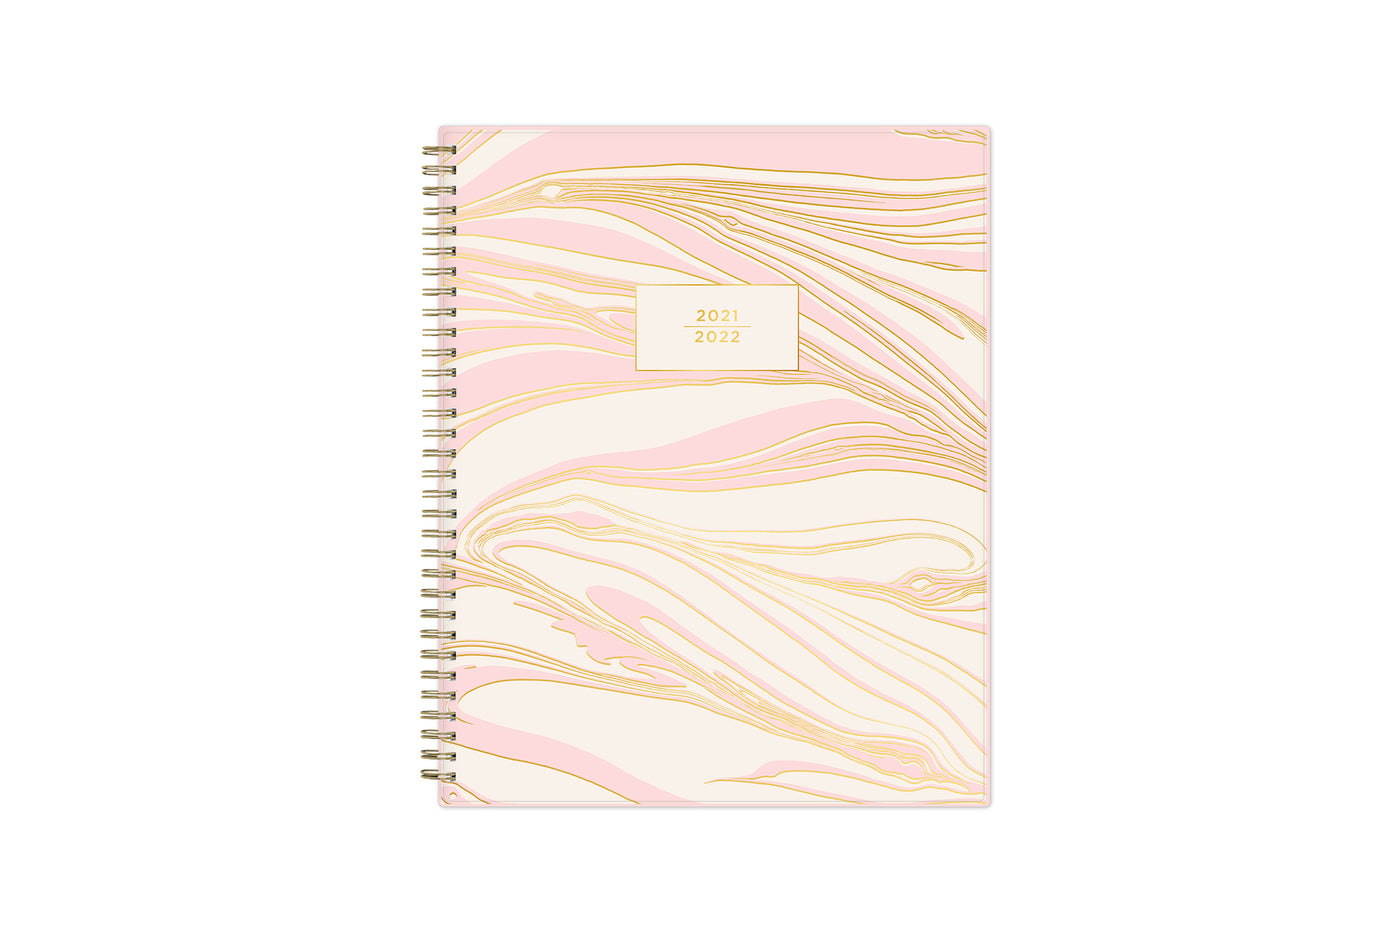 June 2021-2022 weekly and monthly planner for academic year featuring 8.5x11 size with pink and gold mosaic, gold twin wire-o binding